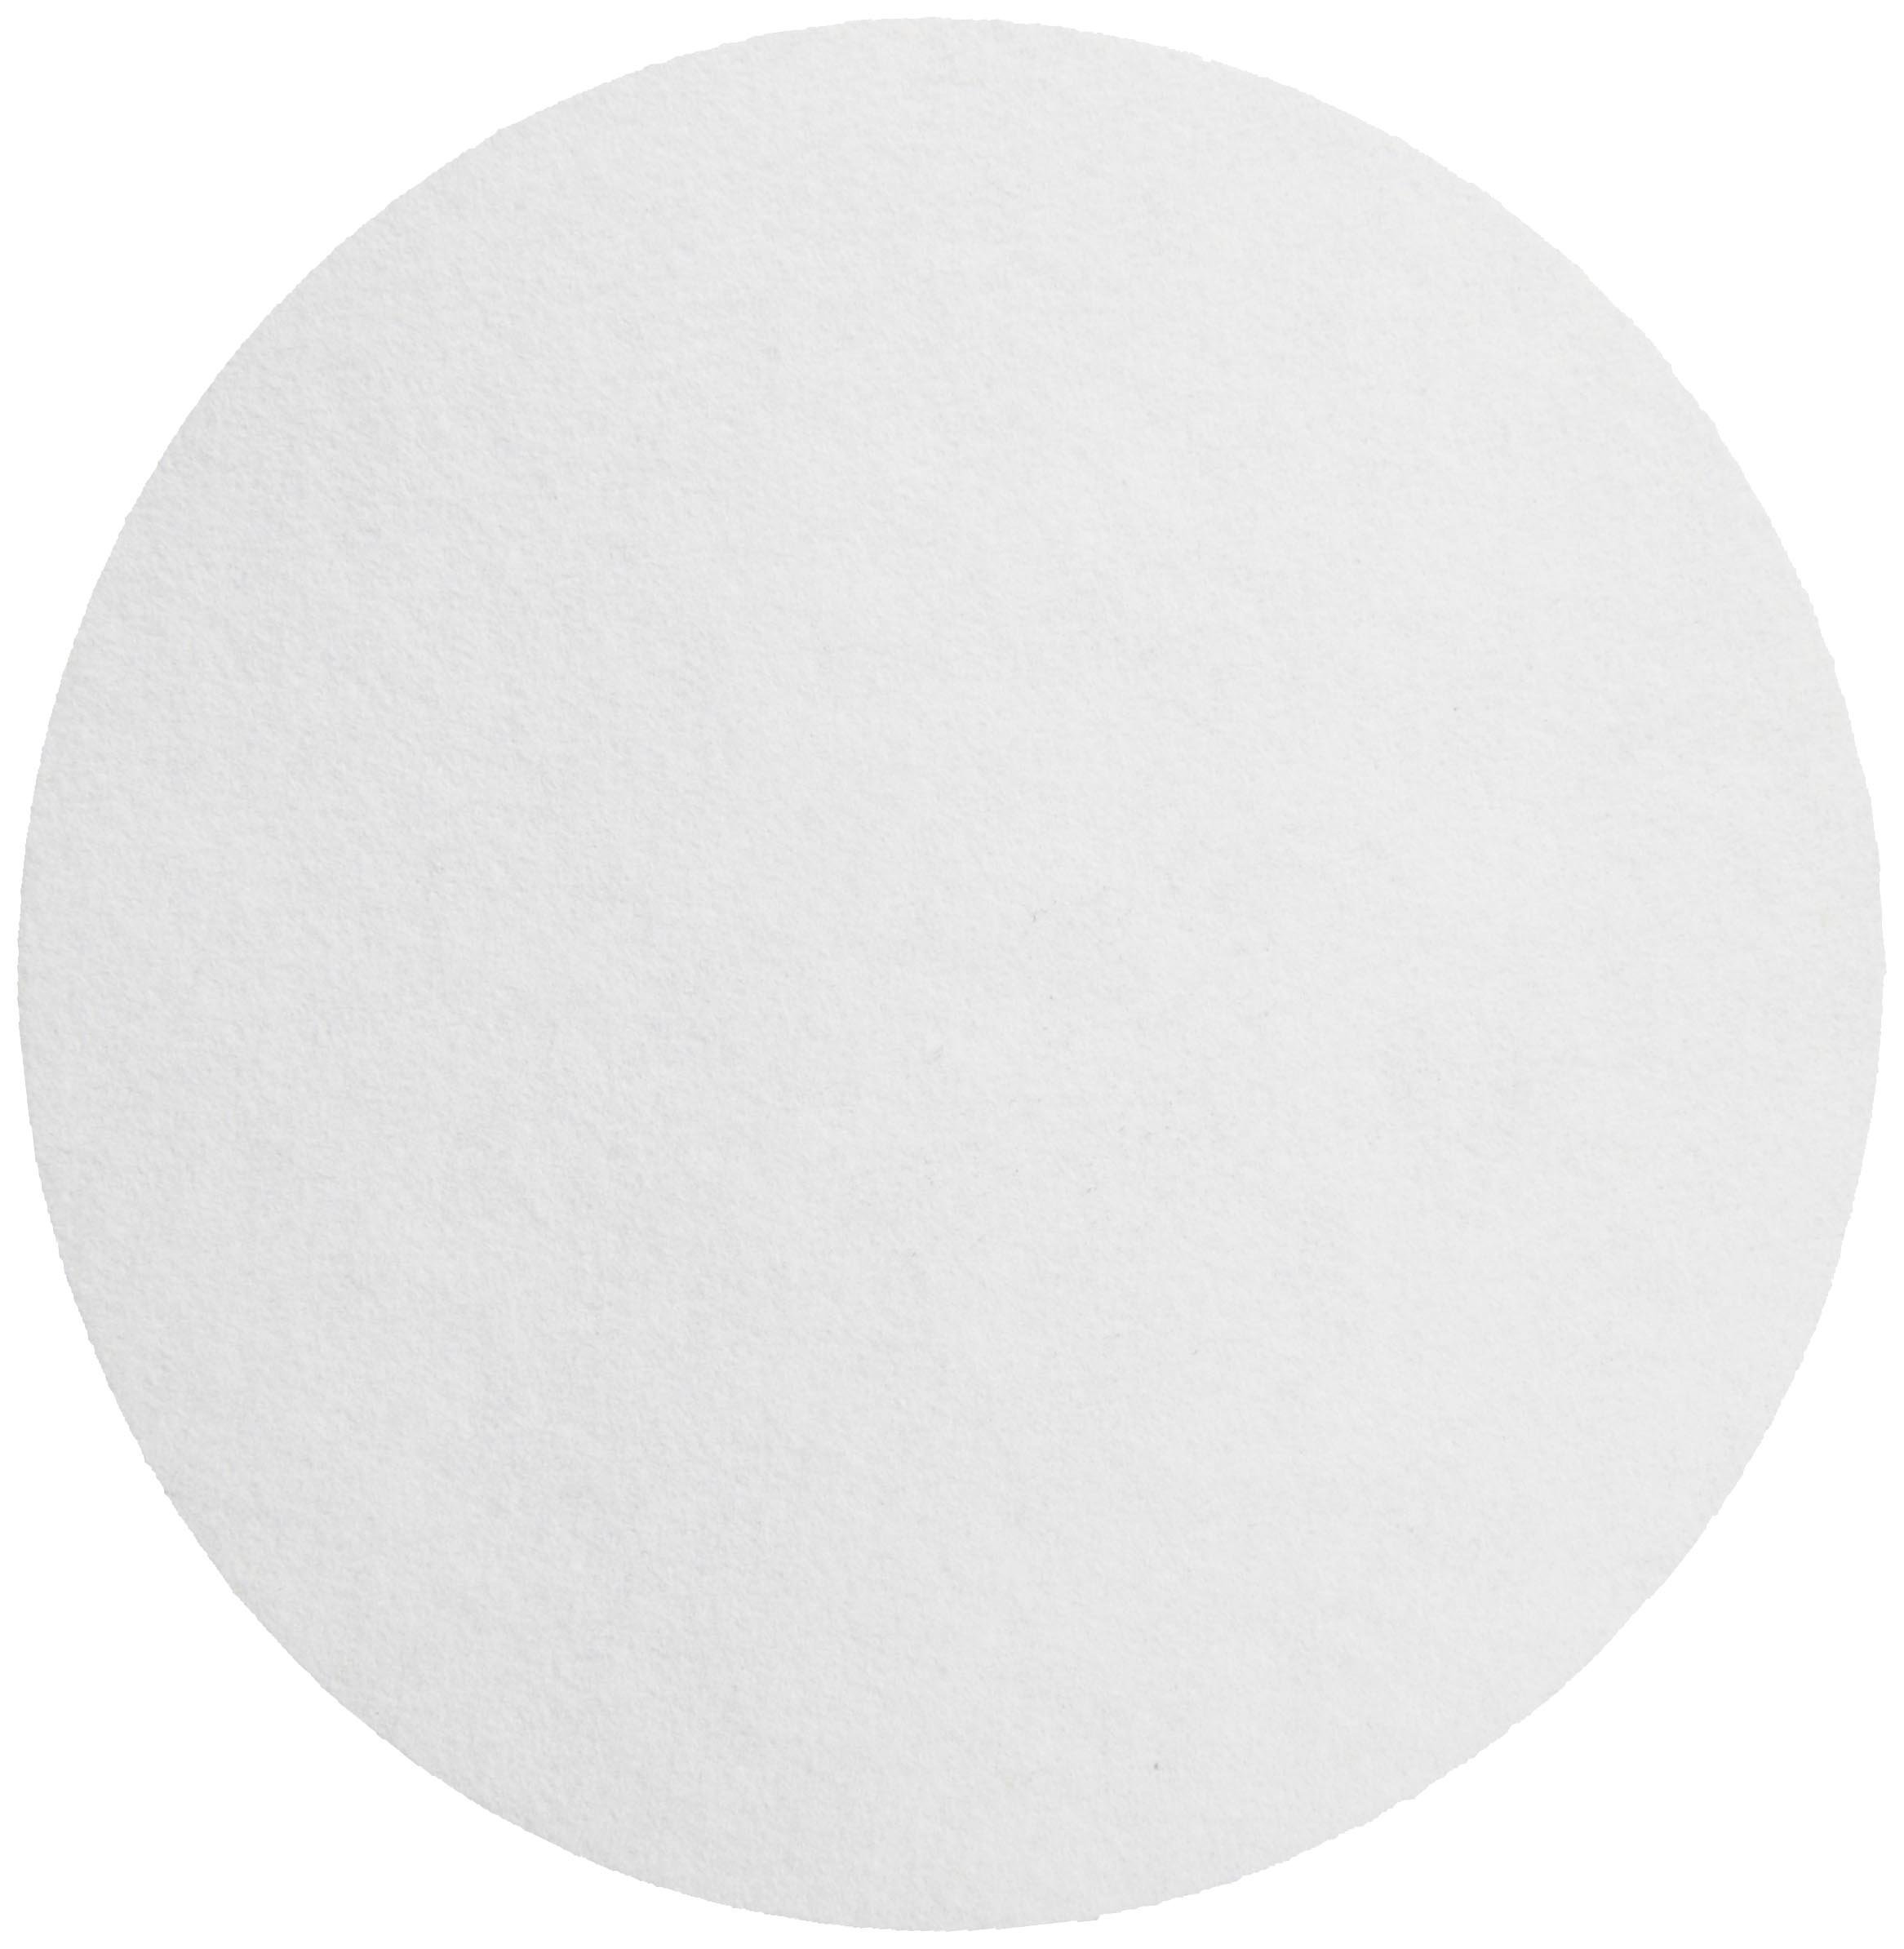 Whatman 1441-055 Quantitative Filter Paper Circles, 20 Micron, Grade 41, 55mm Diameter (Pack of 100) by Whatman